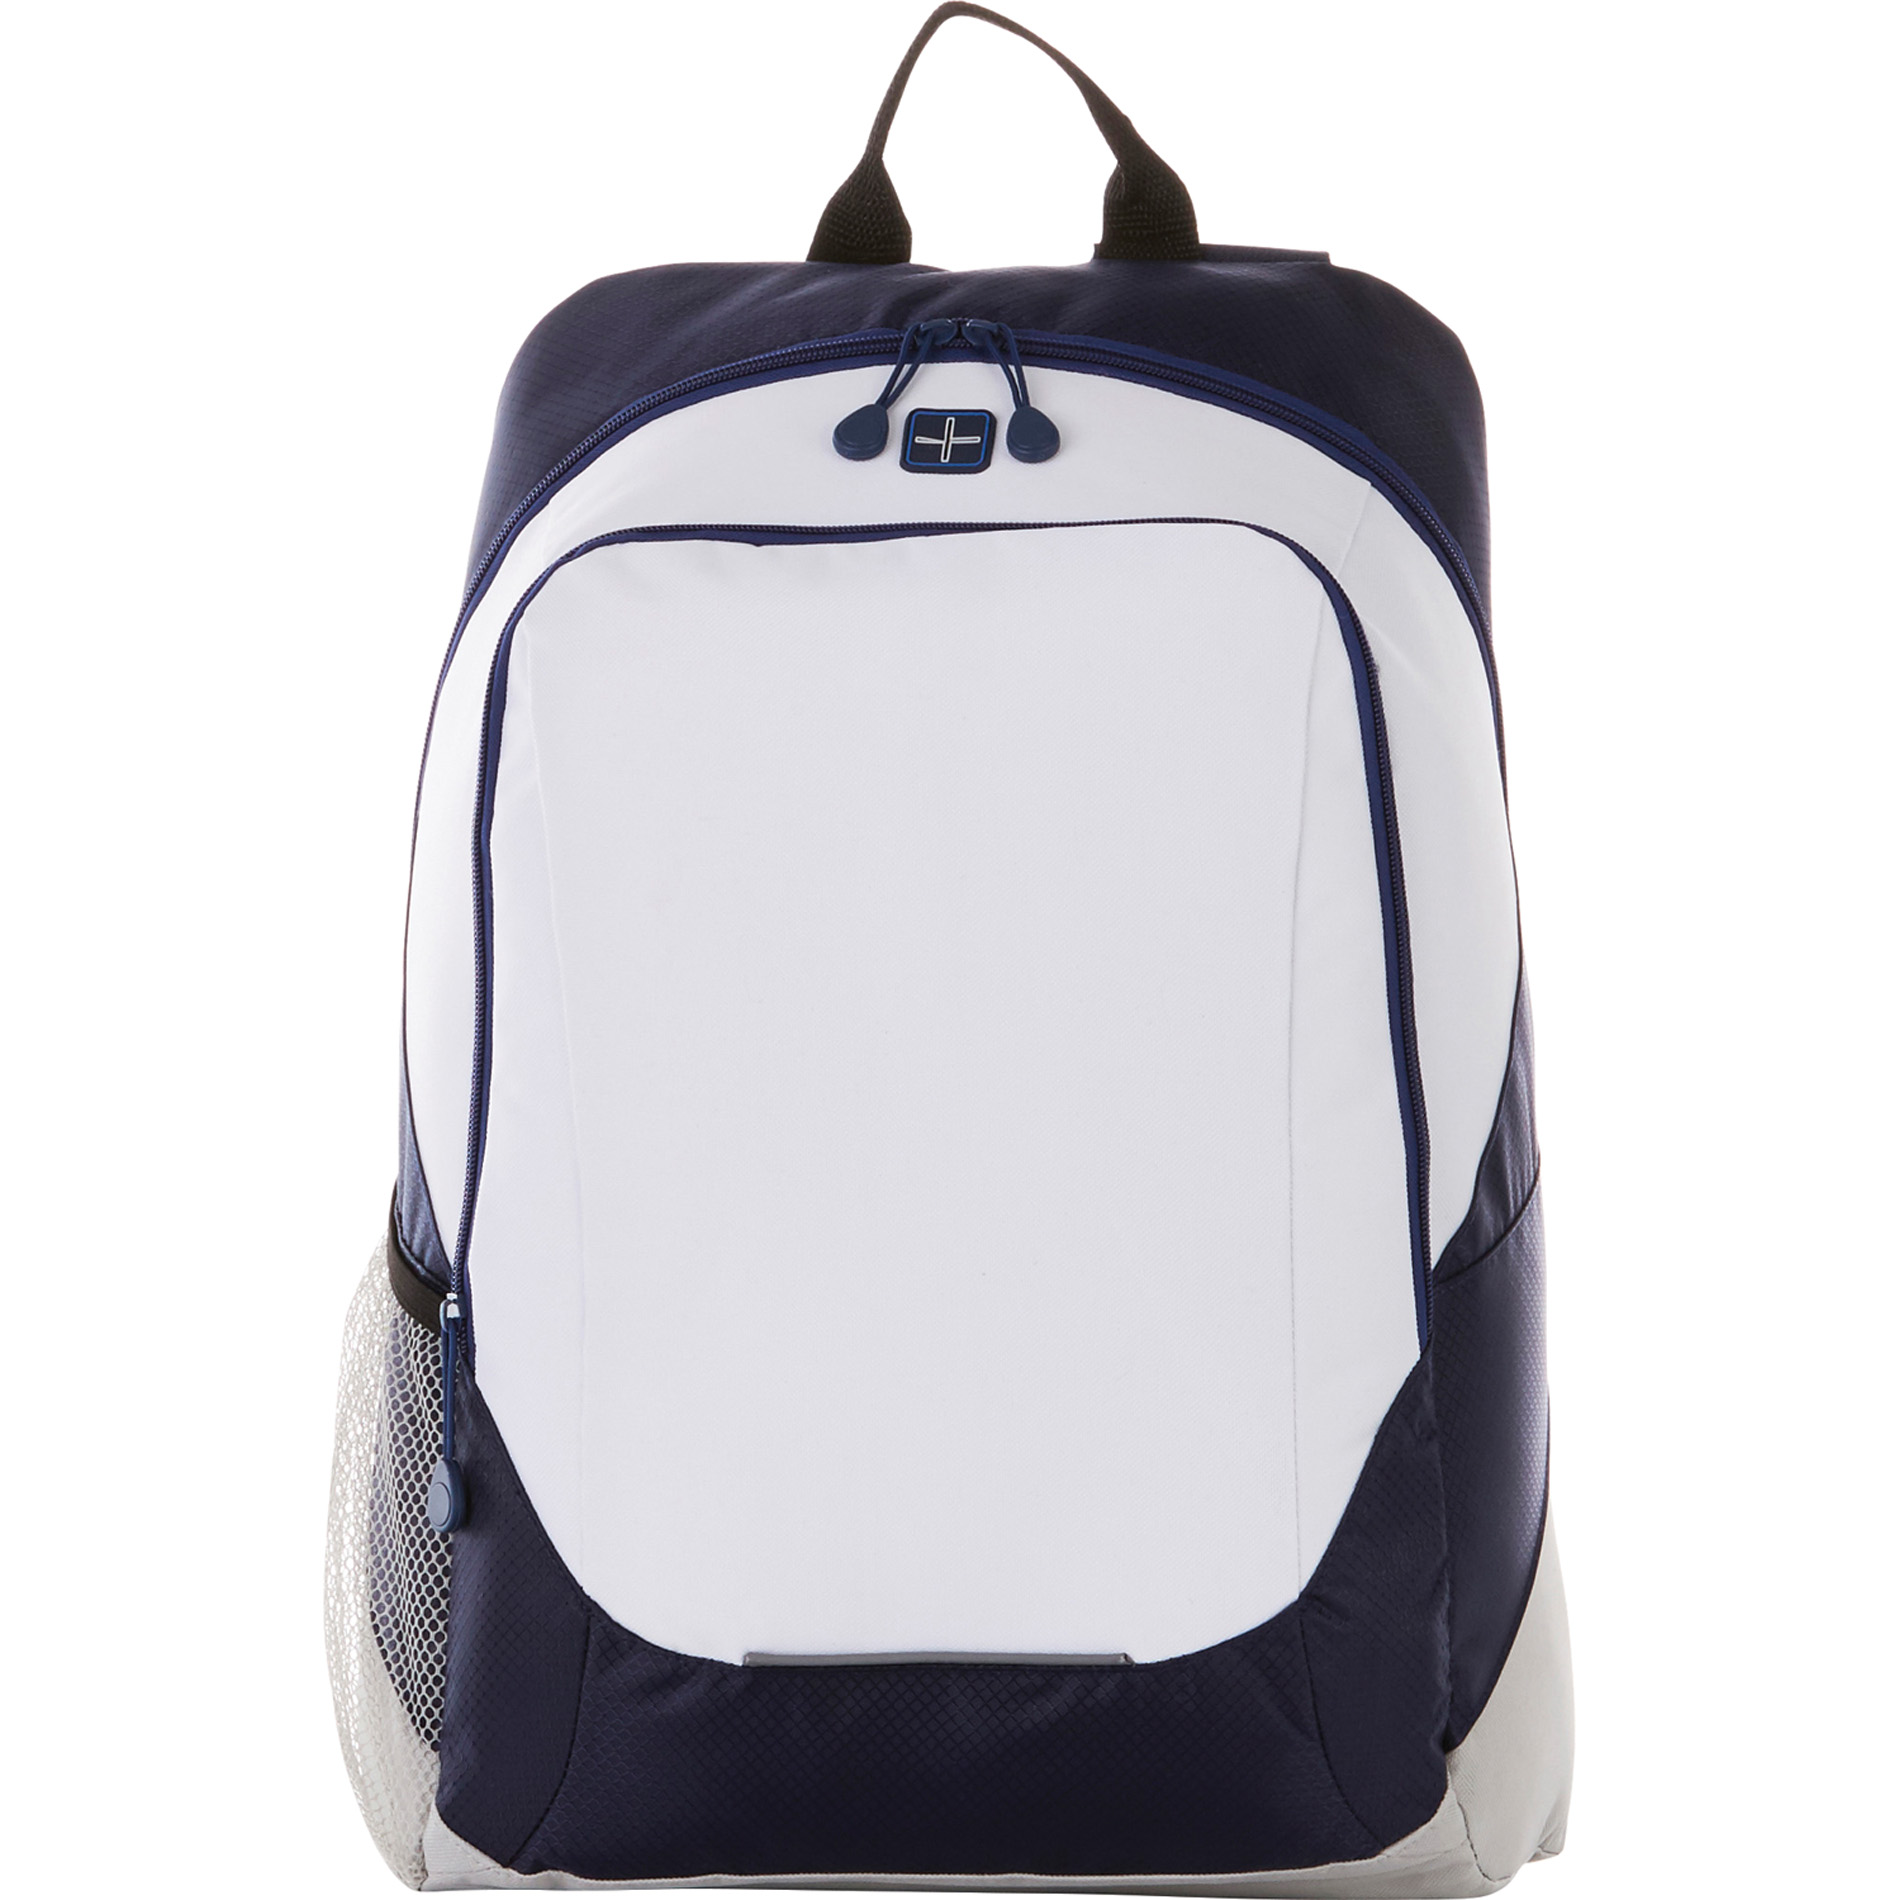 "LEEDS 3750-11 - Ripstop 15"" Computer Backpack"